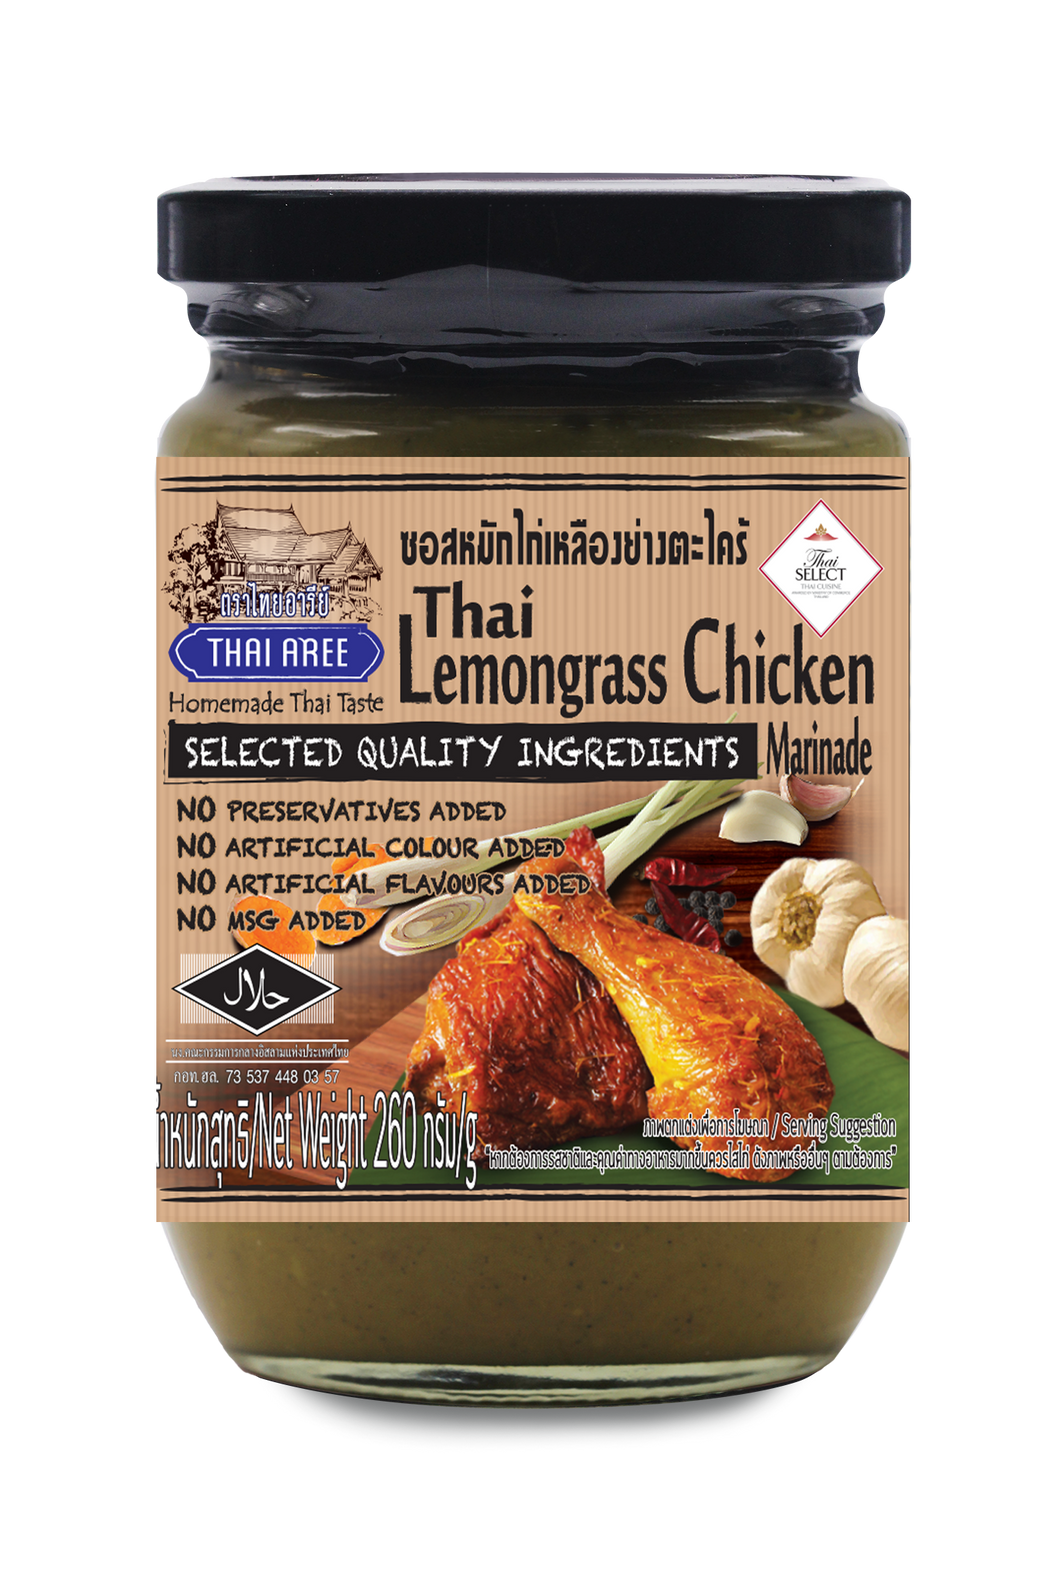 Thai Lemongrass Chicken Marinade Thaiaree